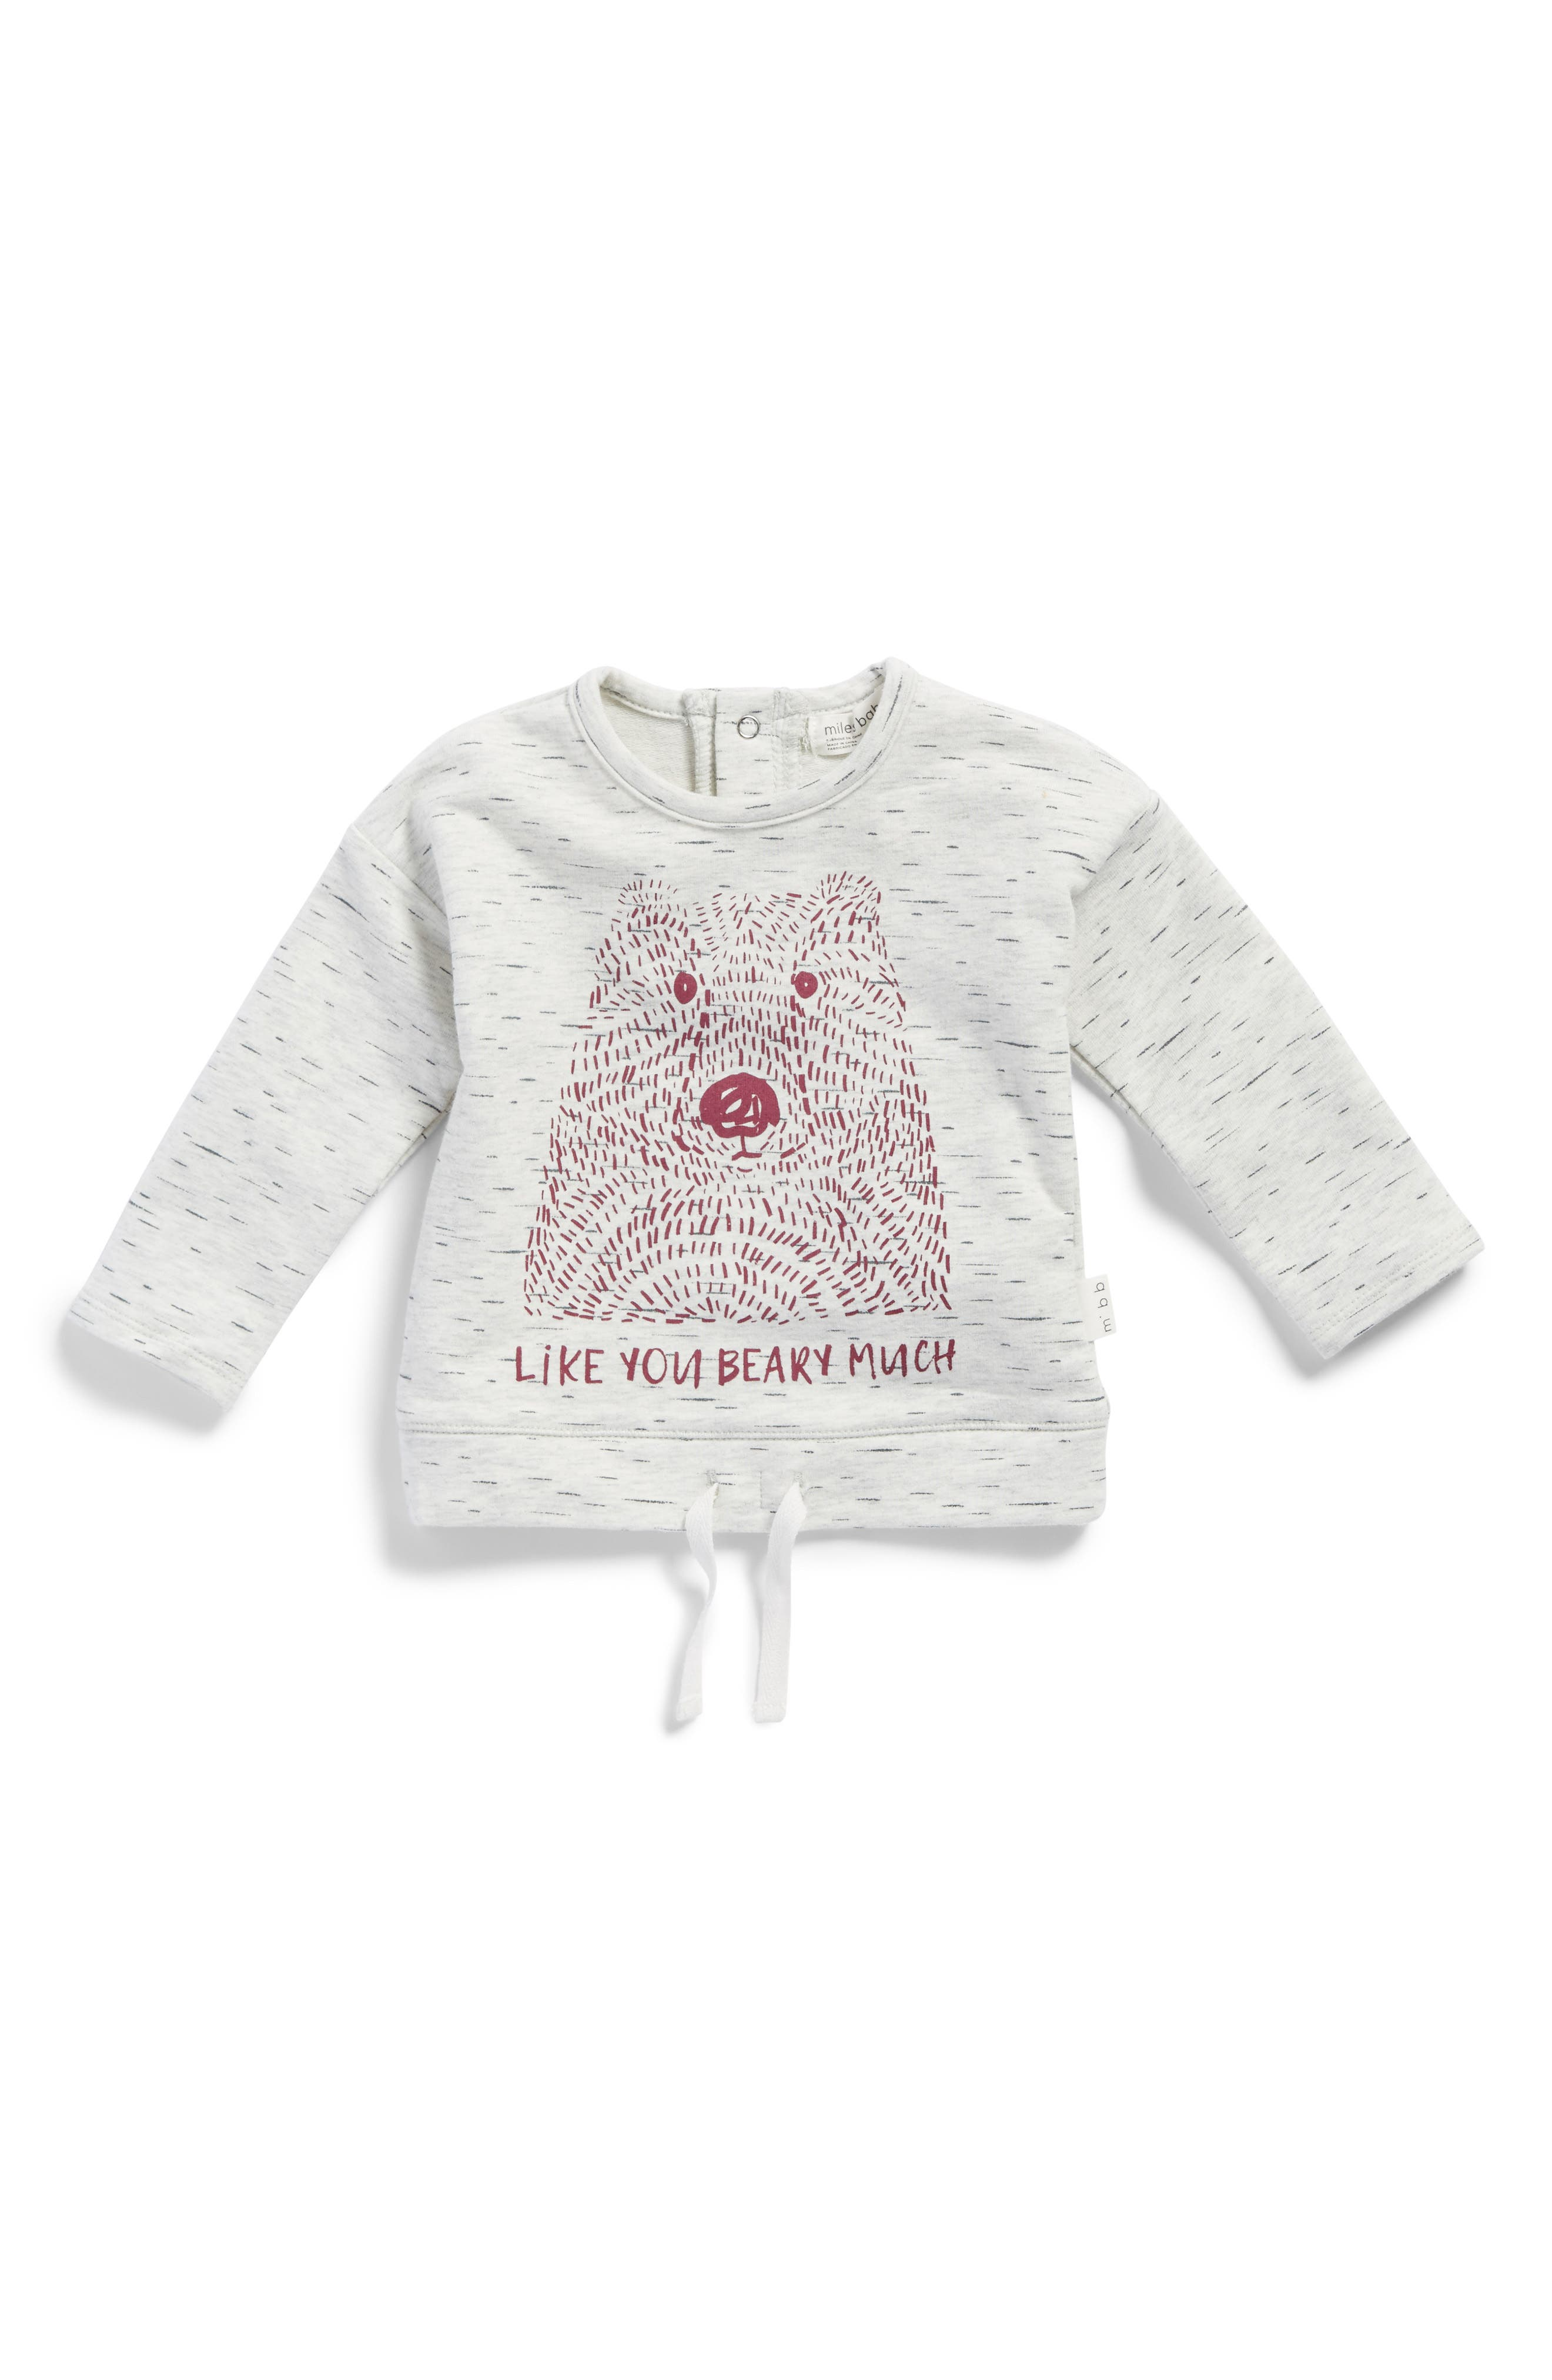 Like You Beary Much Graphic Tee,                         Main,                         color, Heather Grey